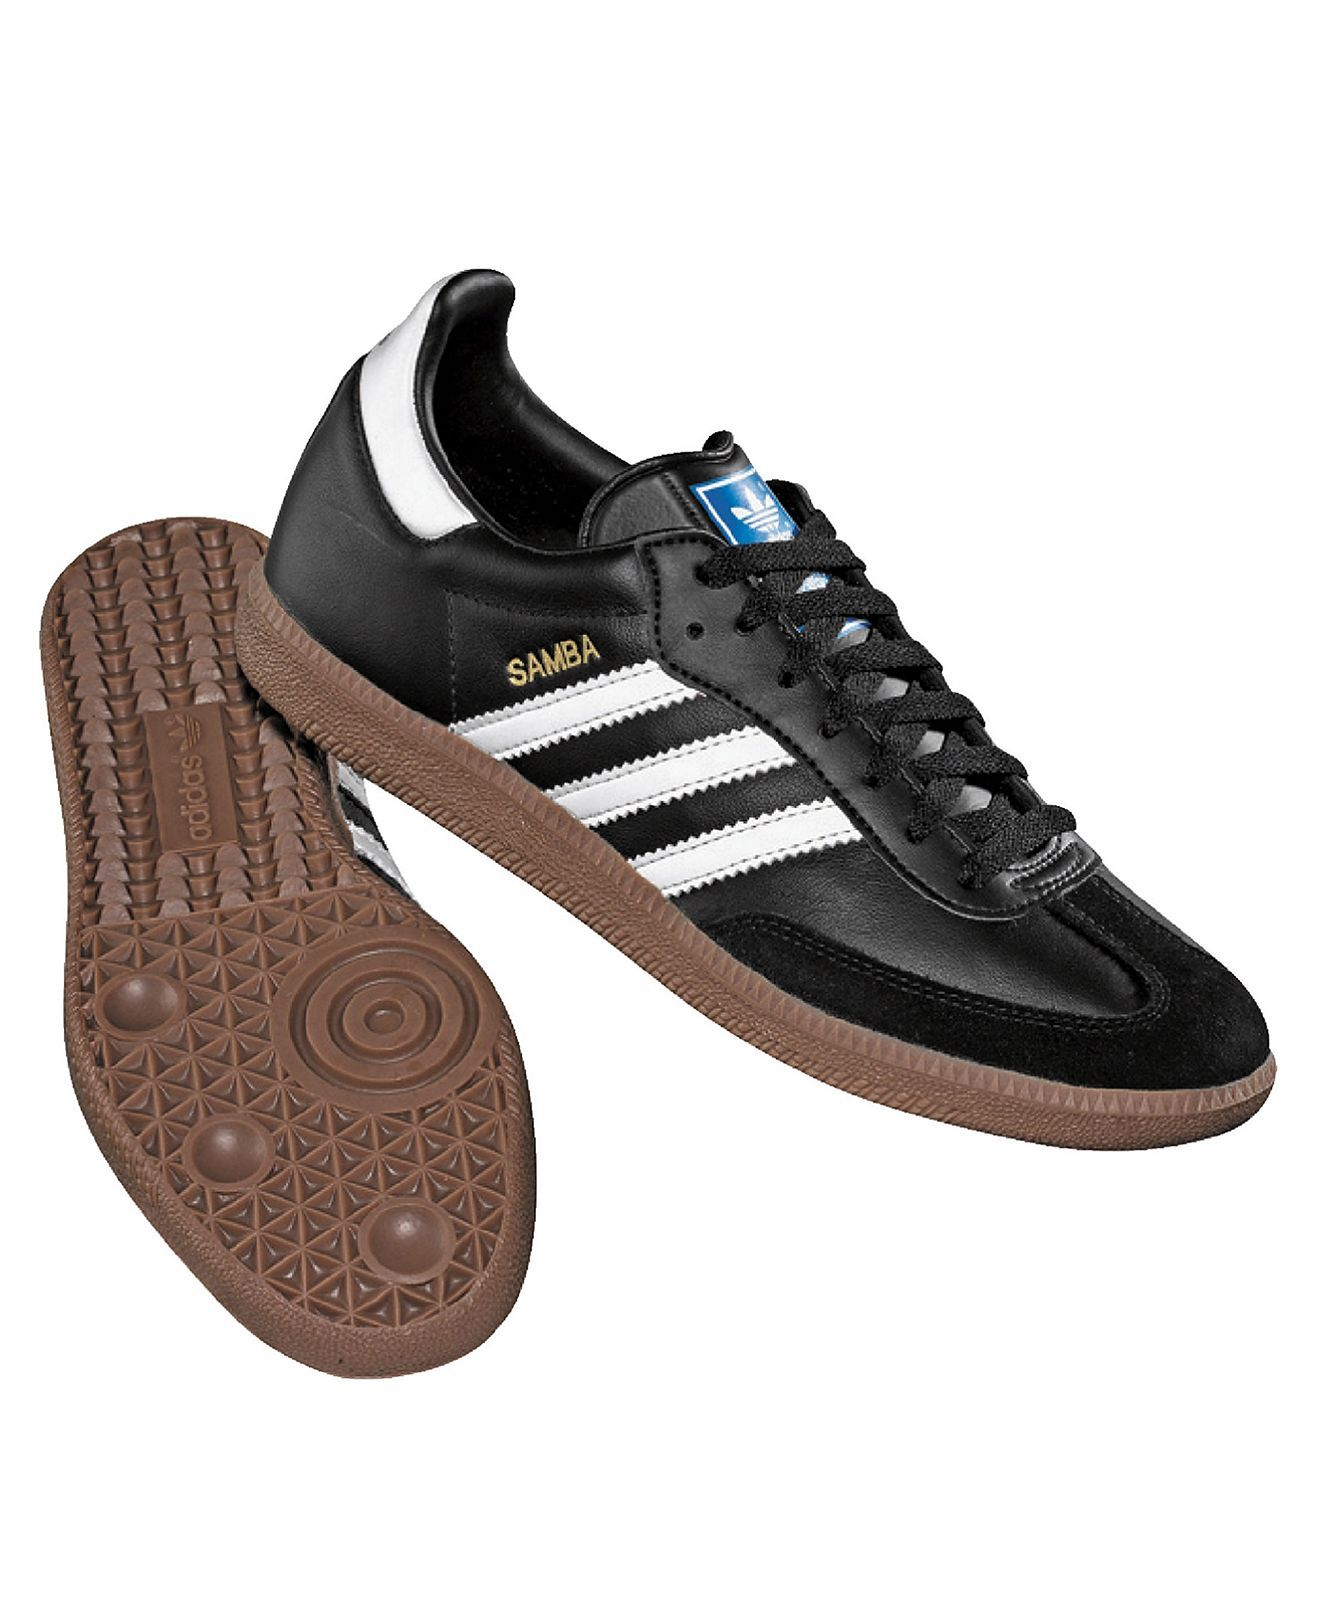 adidas Men\u0027s Originals Leather Samba Sneakers from Finish Line - Sneakers \u0026  Athletic - Men - Macy\u0027s